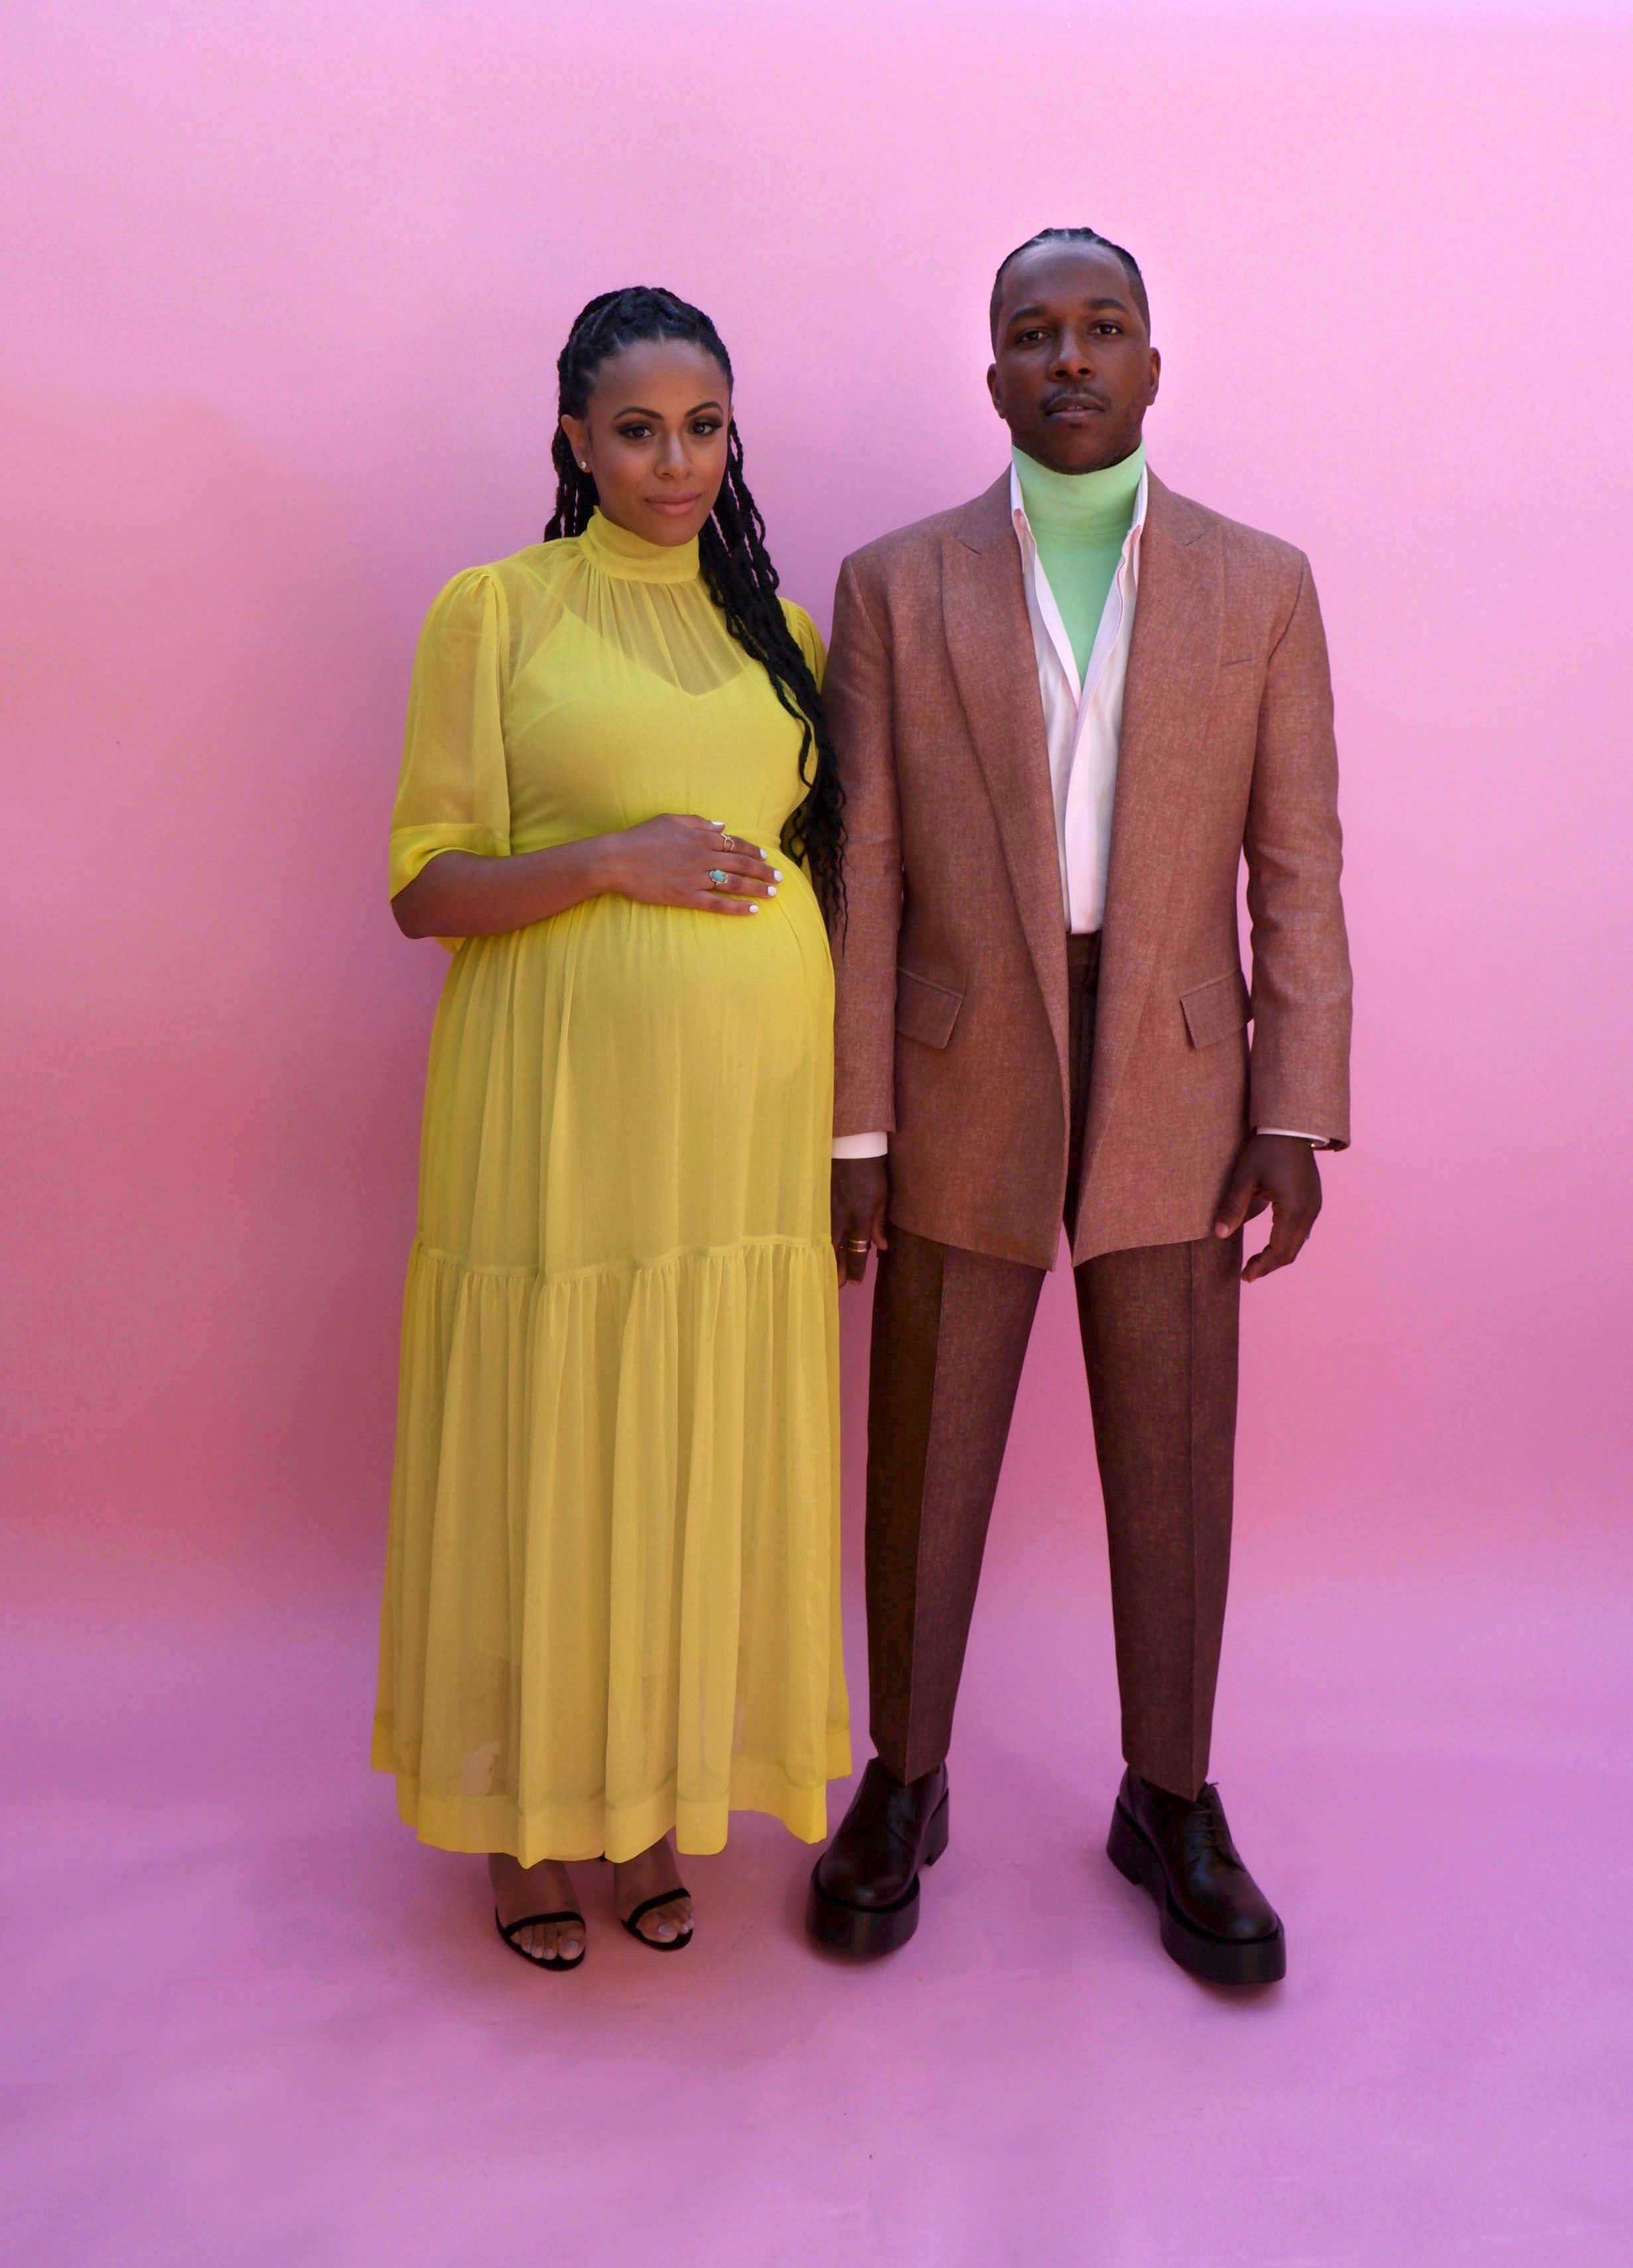 Leslie Odom, Jr. and Nicolette Robinson - Leslie Odom, Jr.andhis actress wifeNicolette Robinsonseemed to be in good spirits as they snapped a few photos in preparation for the 2021 Golden Globe Awards. Quite noticeably, the dapper actor styled in a tailored Valentino ensemble, while his stylish spouse styled a bright yellow maxi dress that perfectly accentuated her growing baby bump.FYI:This makes baby no. 2 for the loving couple. Congratulations to the happy family!